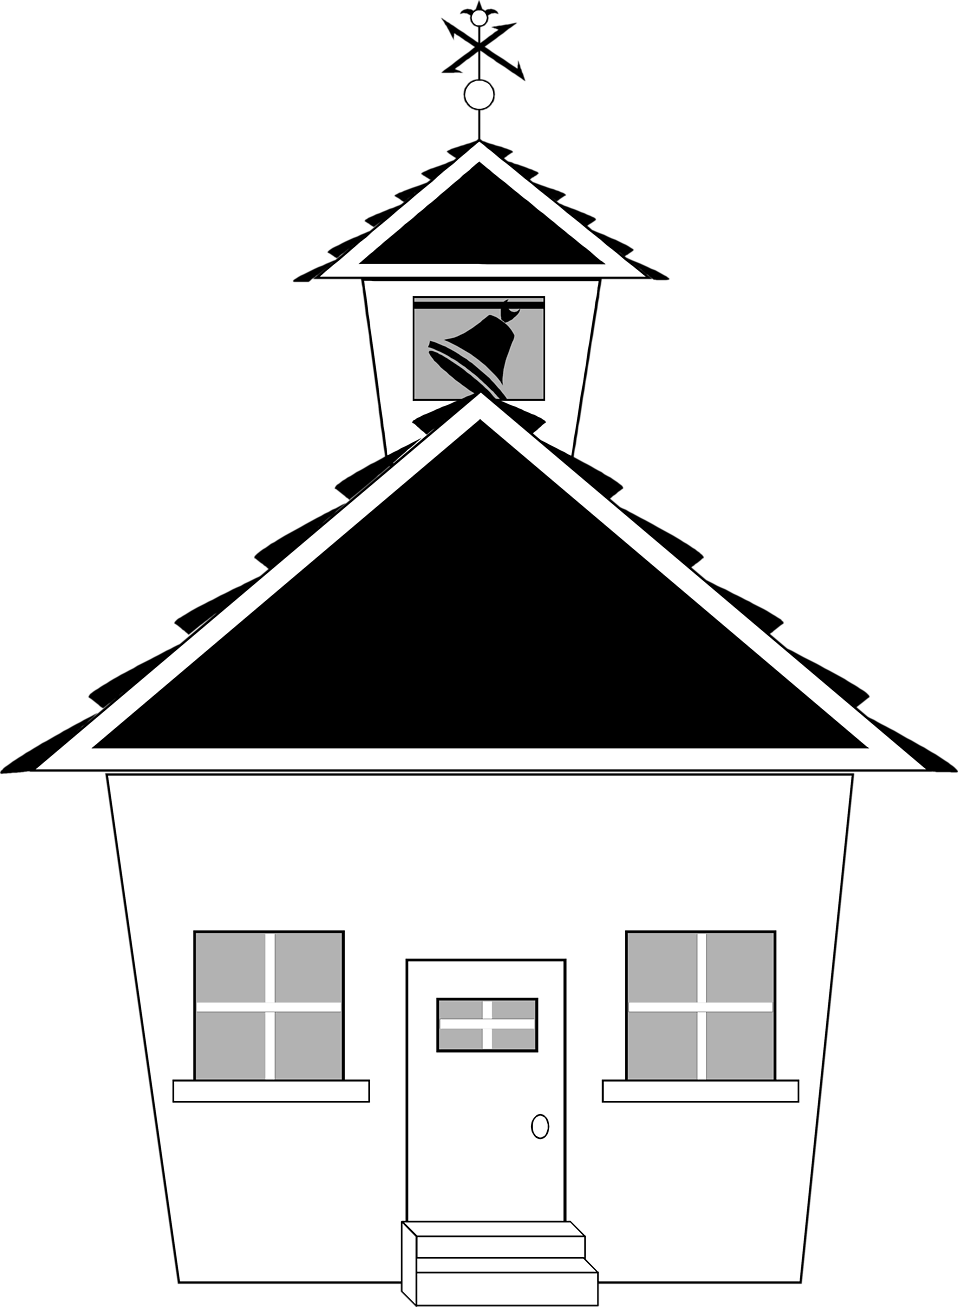 Black and white clipart of house clip art library stock School | Free Stock Photo | Illustration of a small school house ... clip art library stock